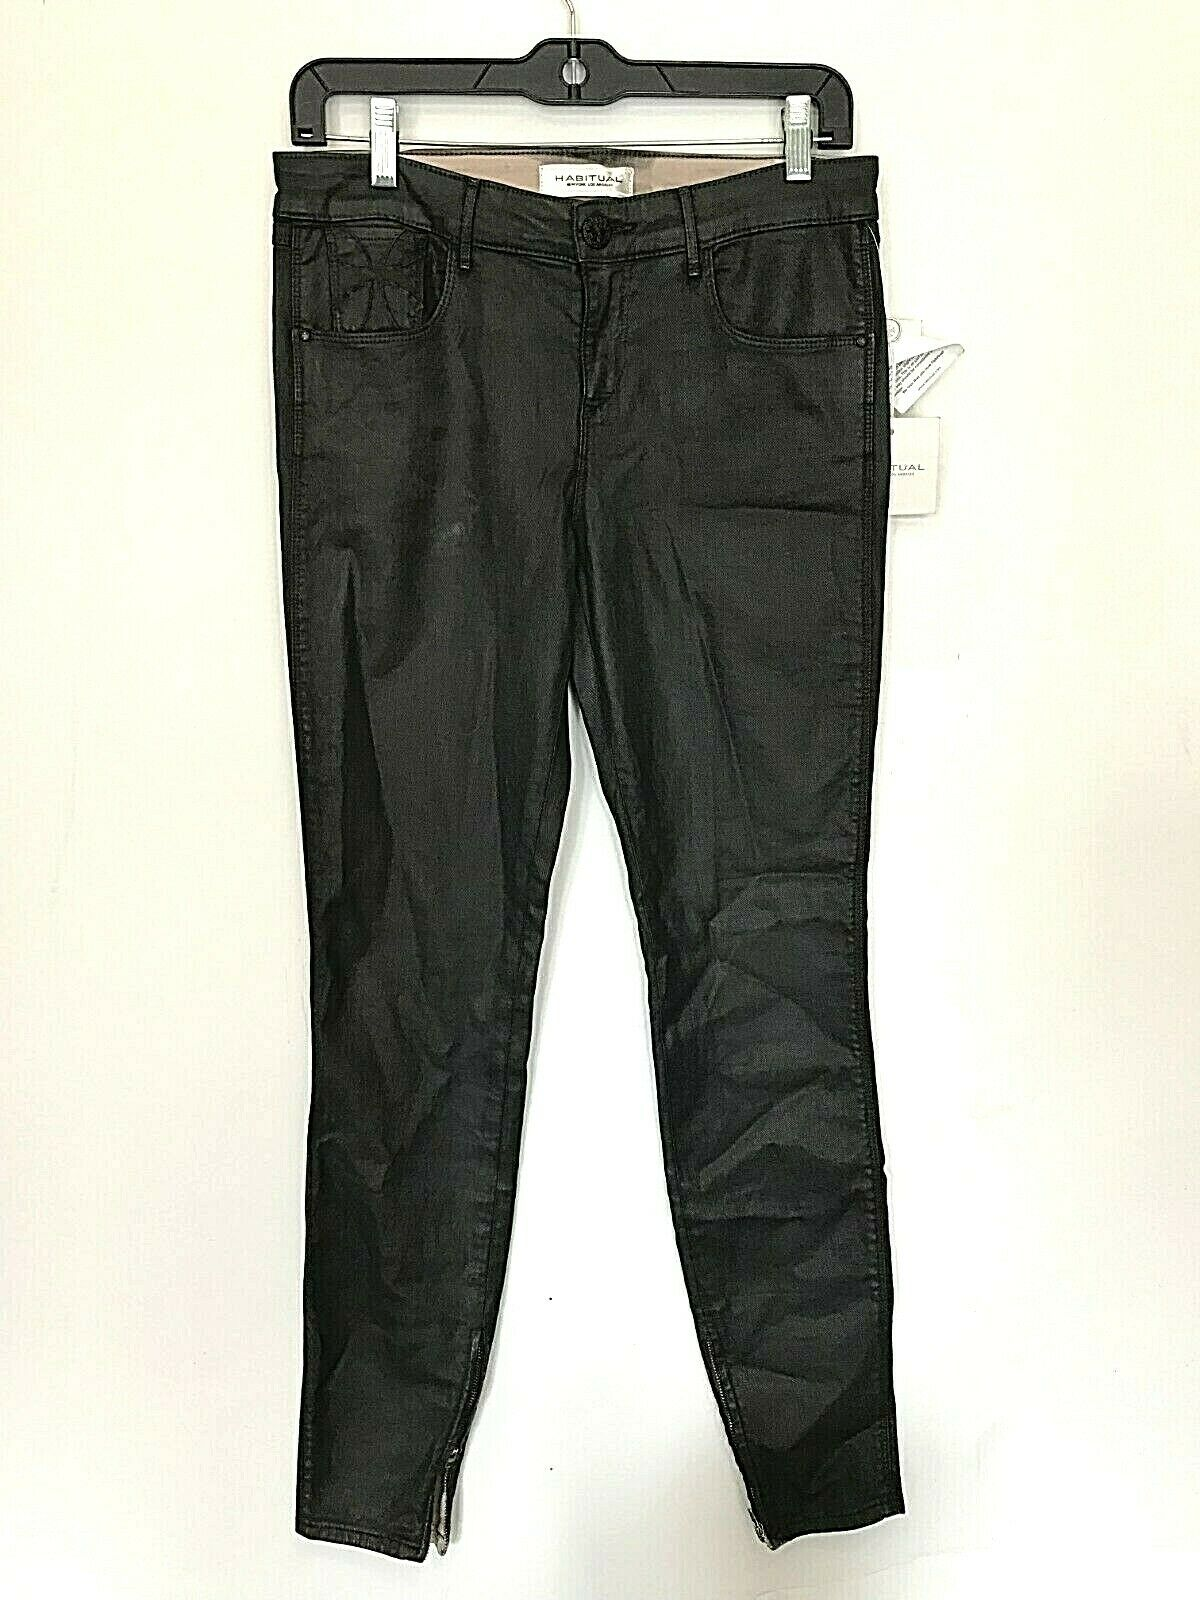 NWT HABITUAL COATED DENIM CHARCOAL COLOR SKINNY LIKE LEATHER PANTS JEANS Size 28